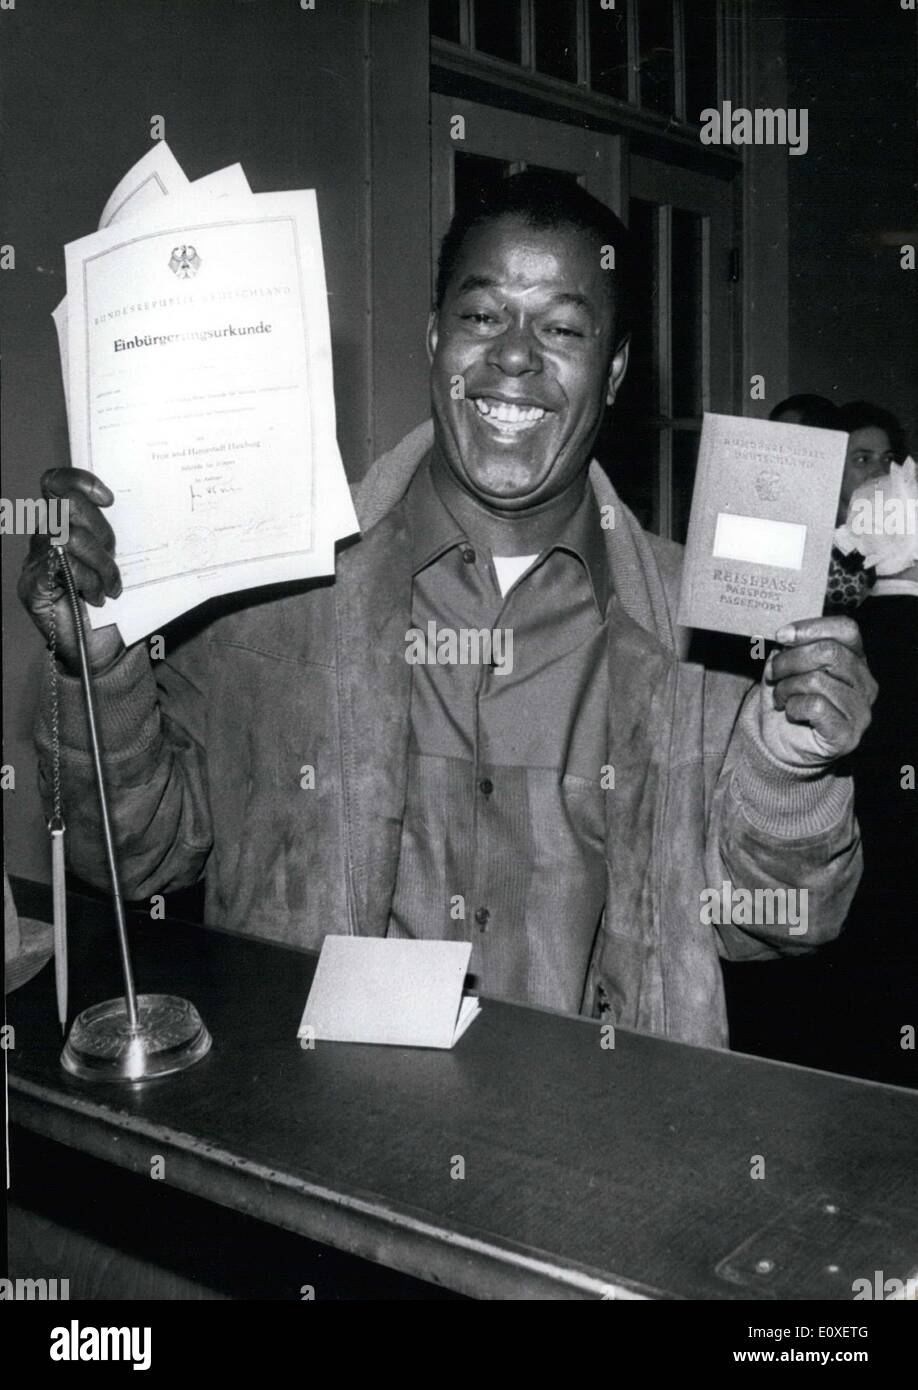 Jul. 12, 1966 - Billy Mo has waited ten years for this moment. On this day he received his certificate of naturalization at the - Stock Image